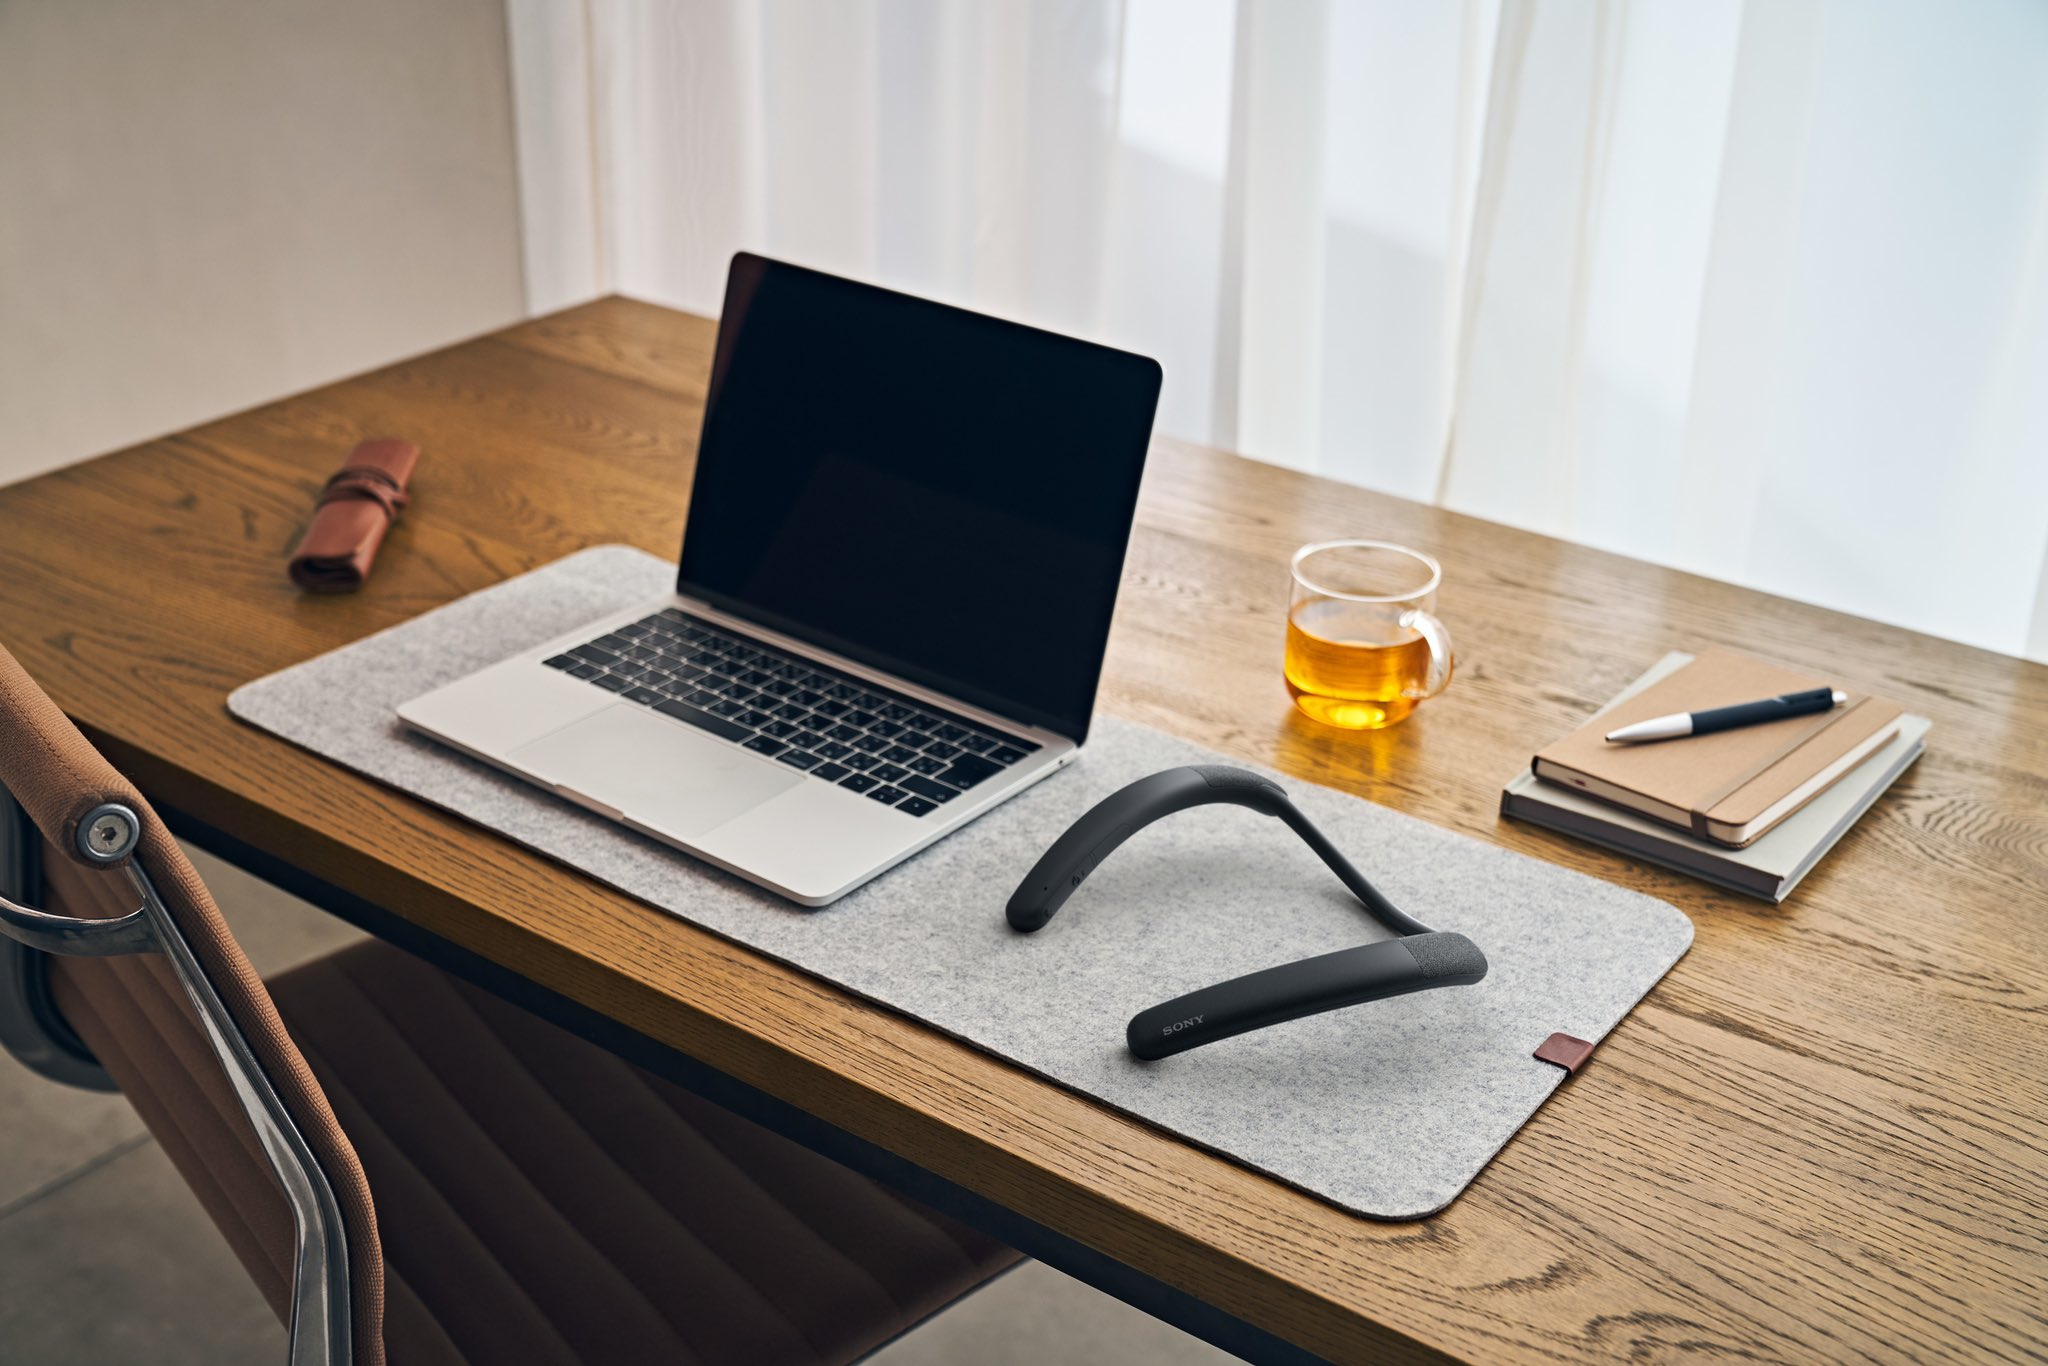 Sony launches SRS-NB10 wireless neckband speaker with 20 hours battery life for $149